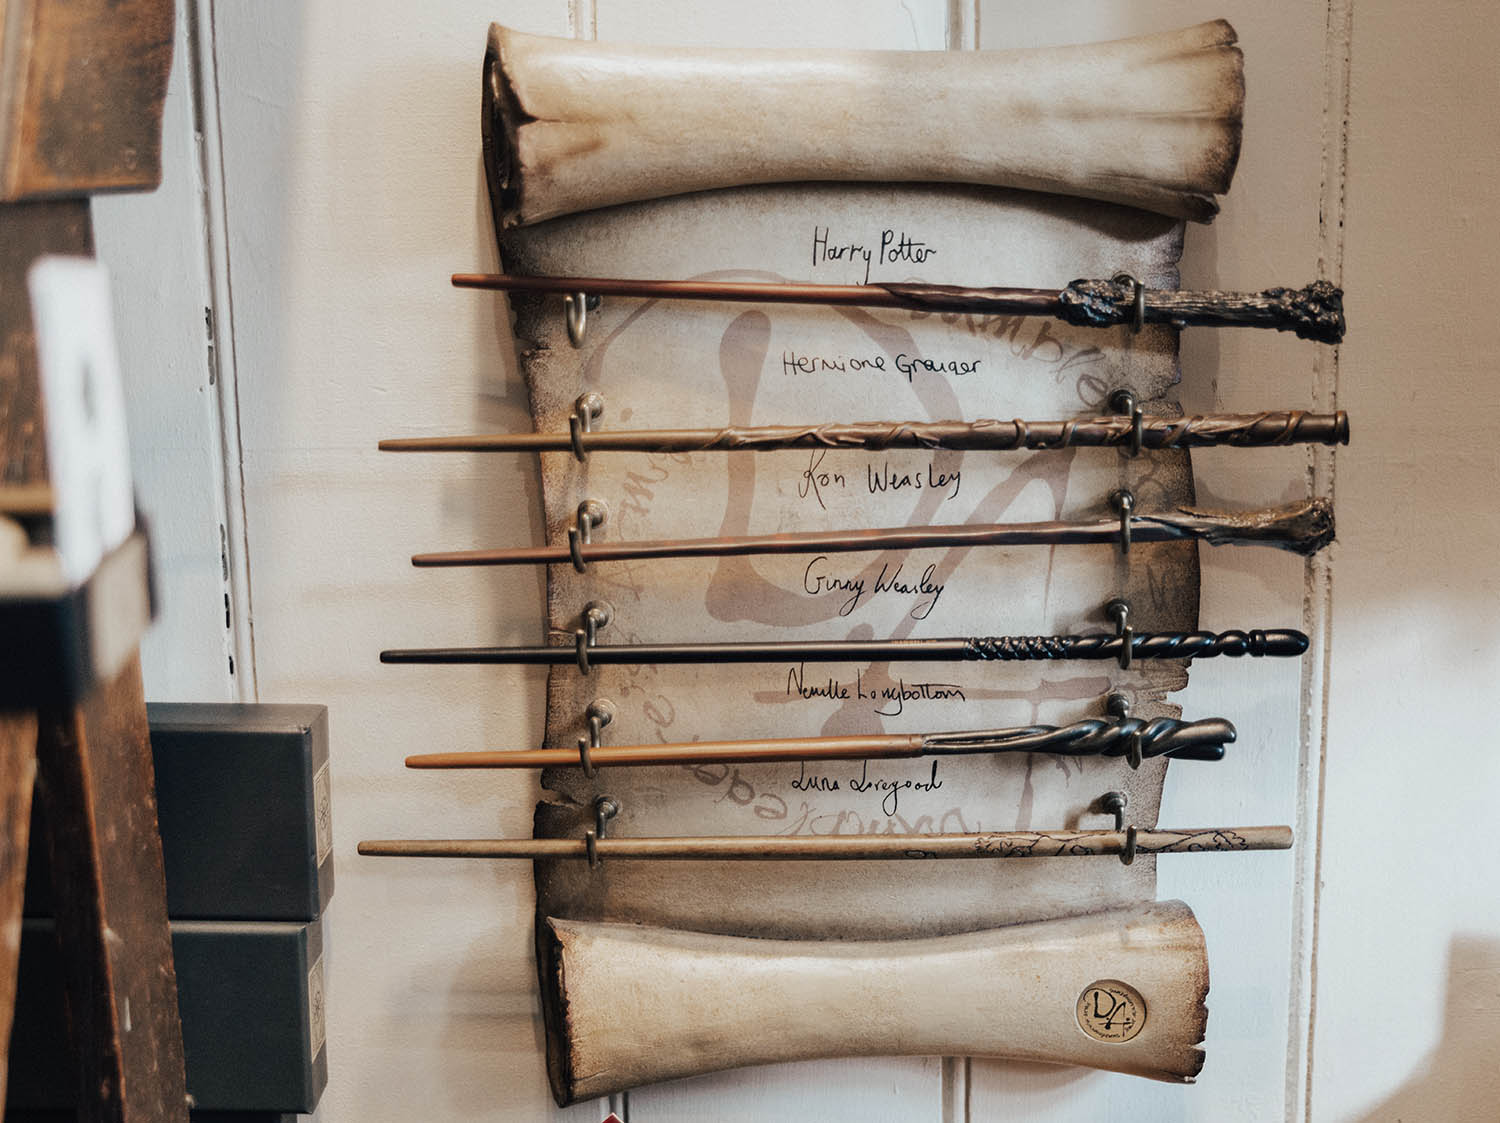 Harry Potter Wands in Diagon House